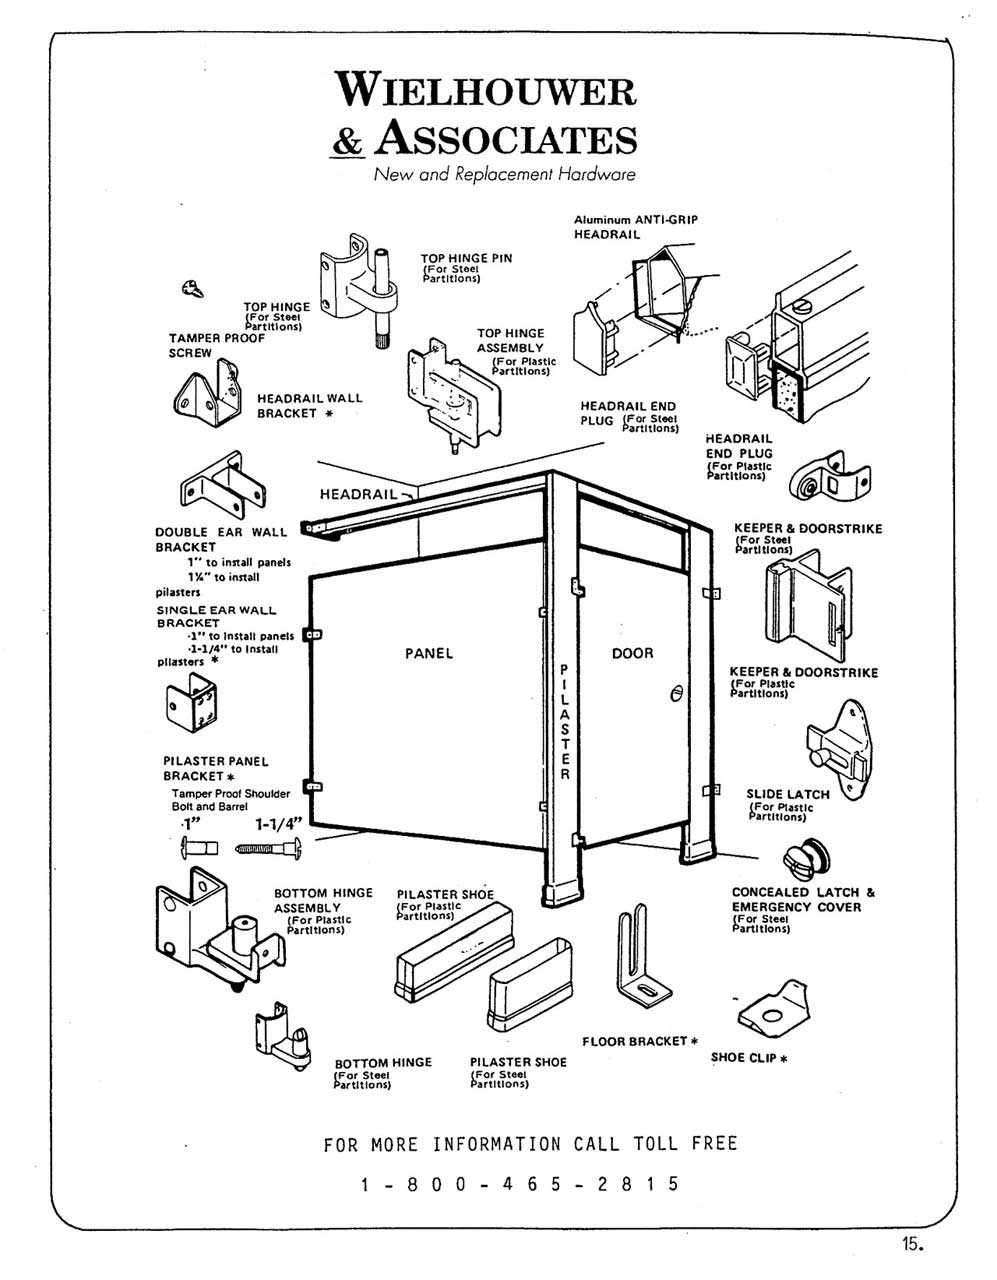 medium resolution of toilet partition diagram showing common components and replacement parts